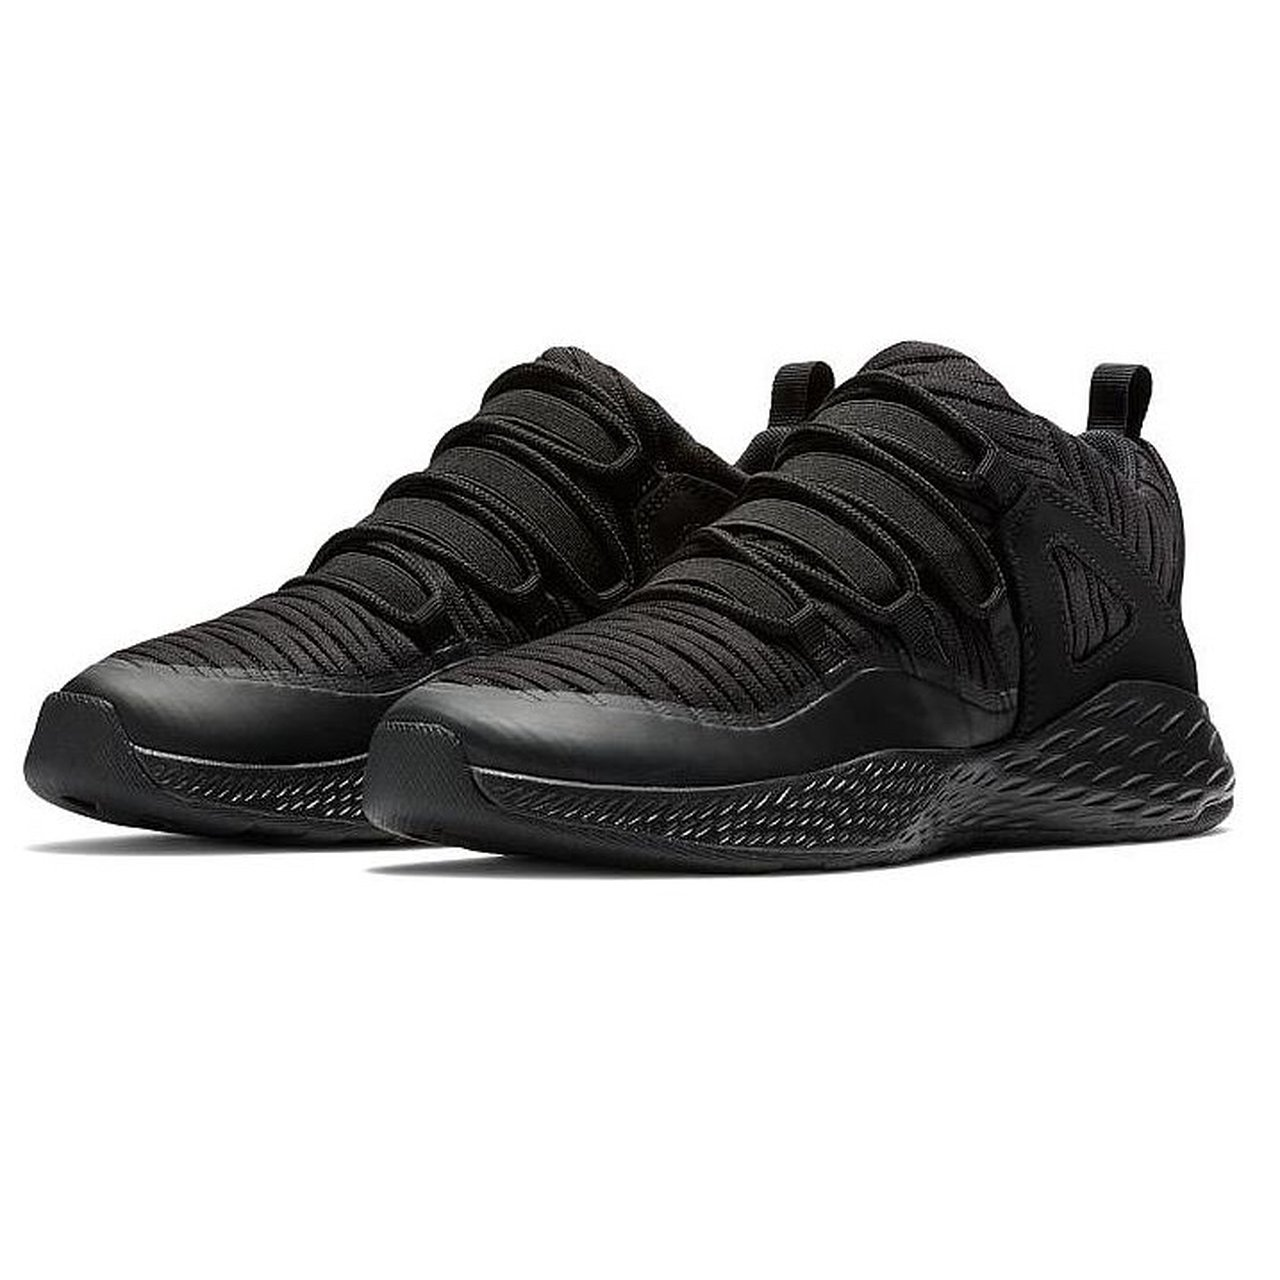 a54358055715 BLACK ON BLACK NIKE JORDAN FORMULA 23 LOW TOP BG TRAINERS